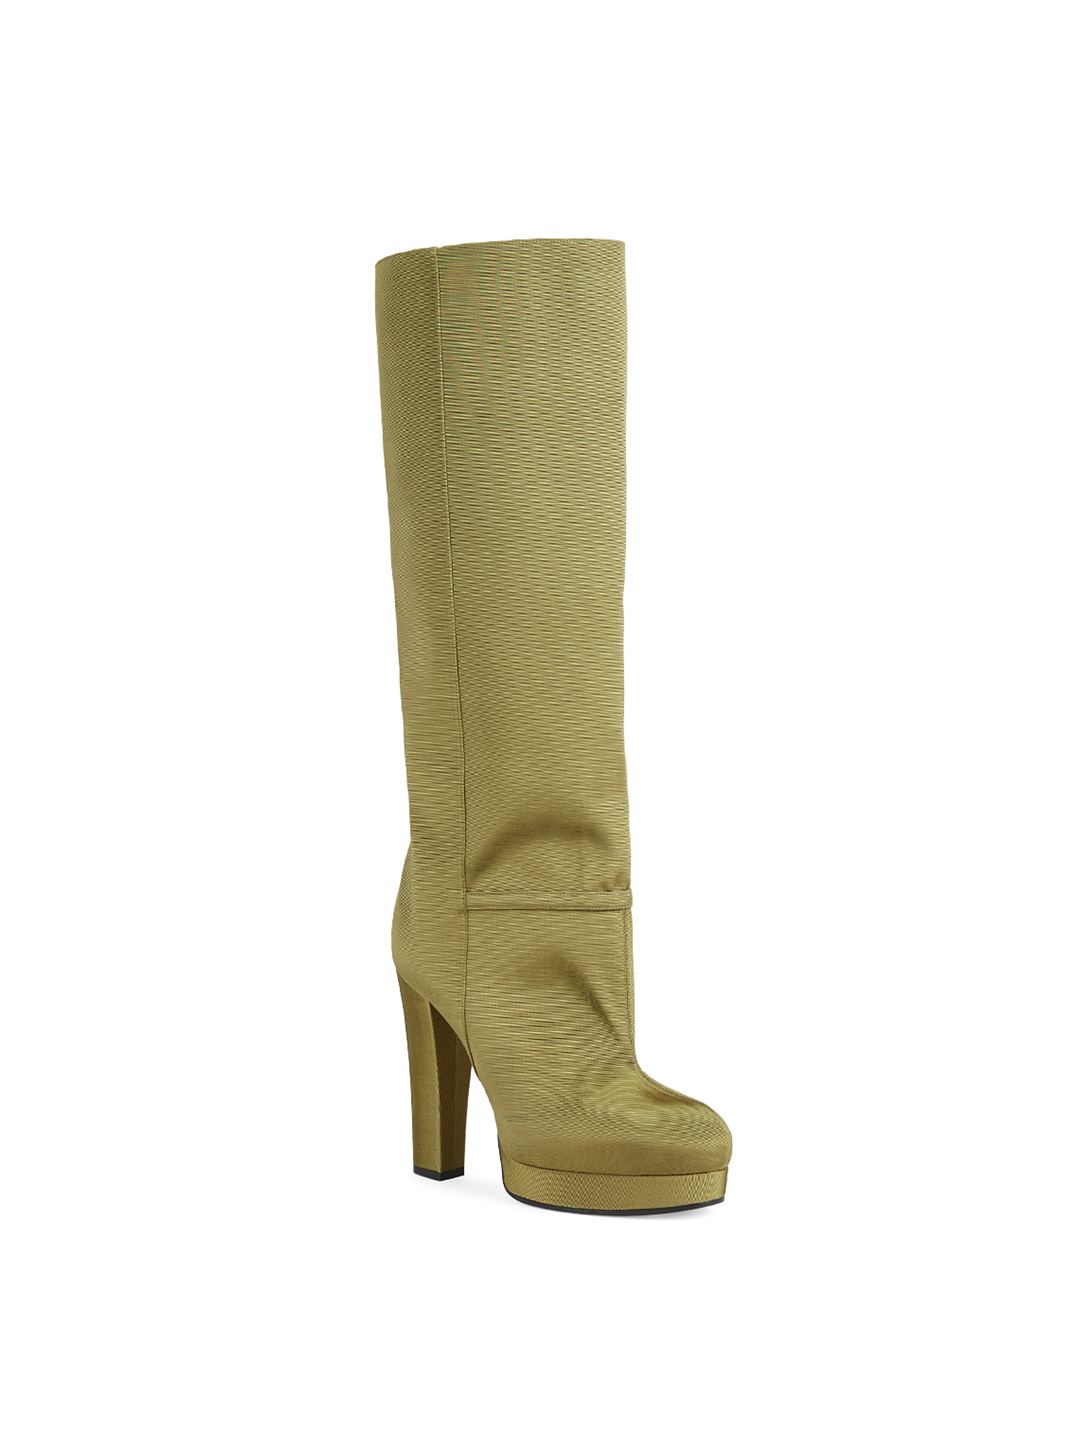 GUCCI Ribbed Fabric Platform Knee-High Boots Women's Green